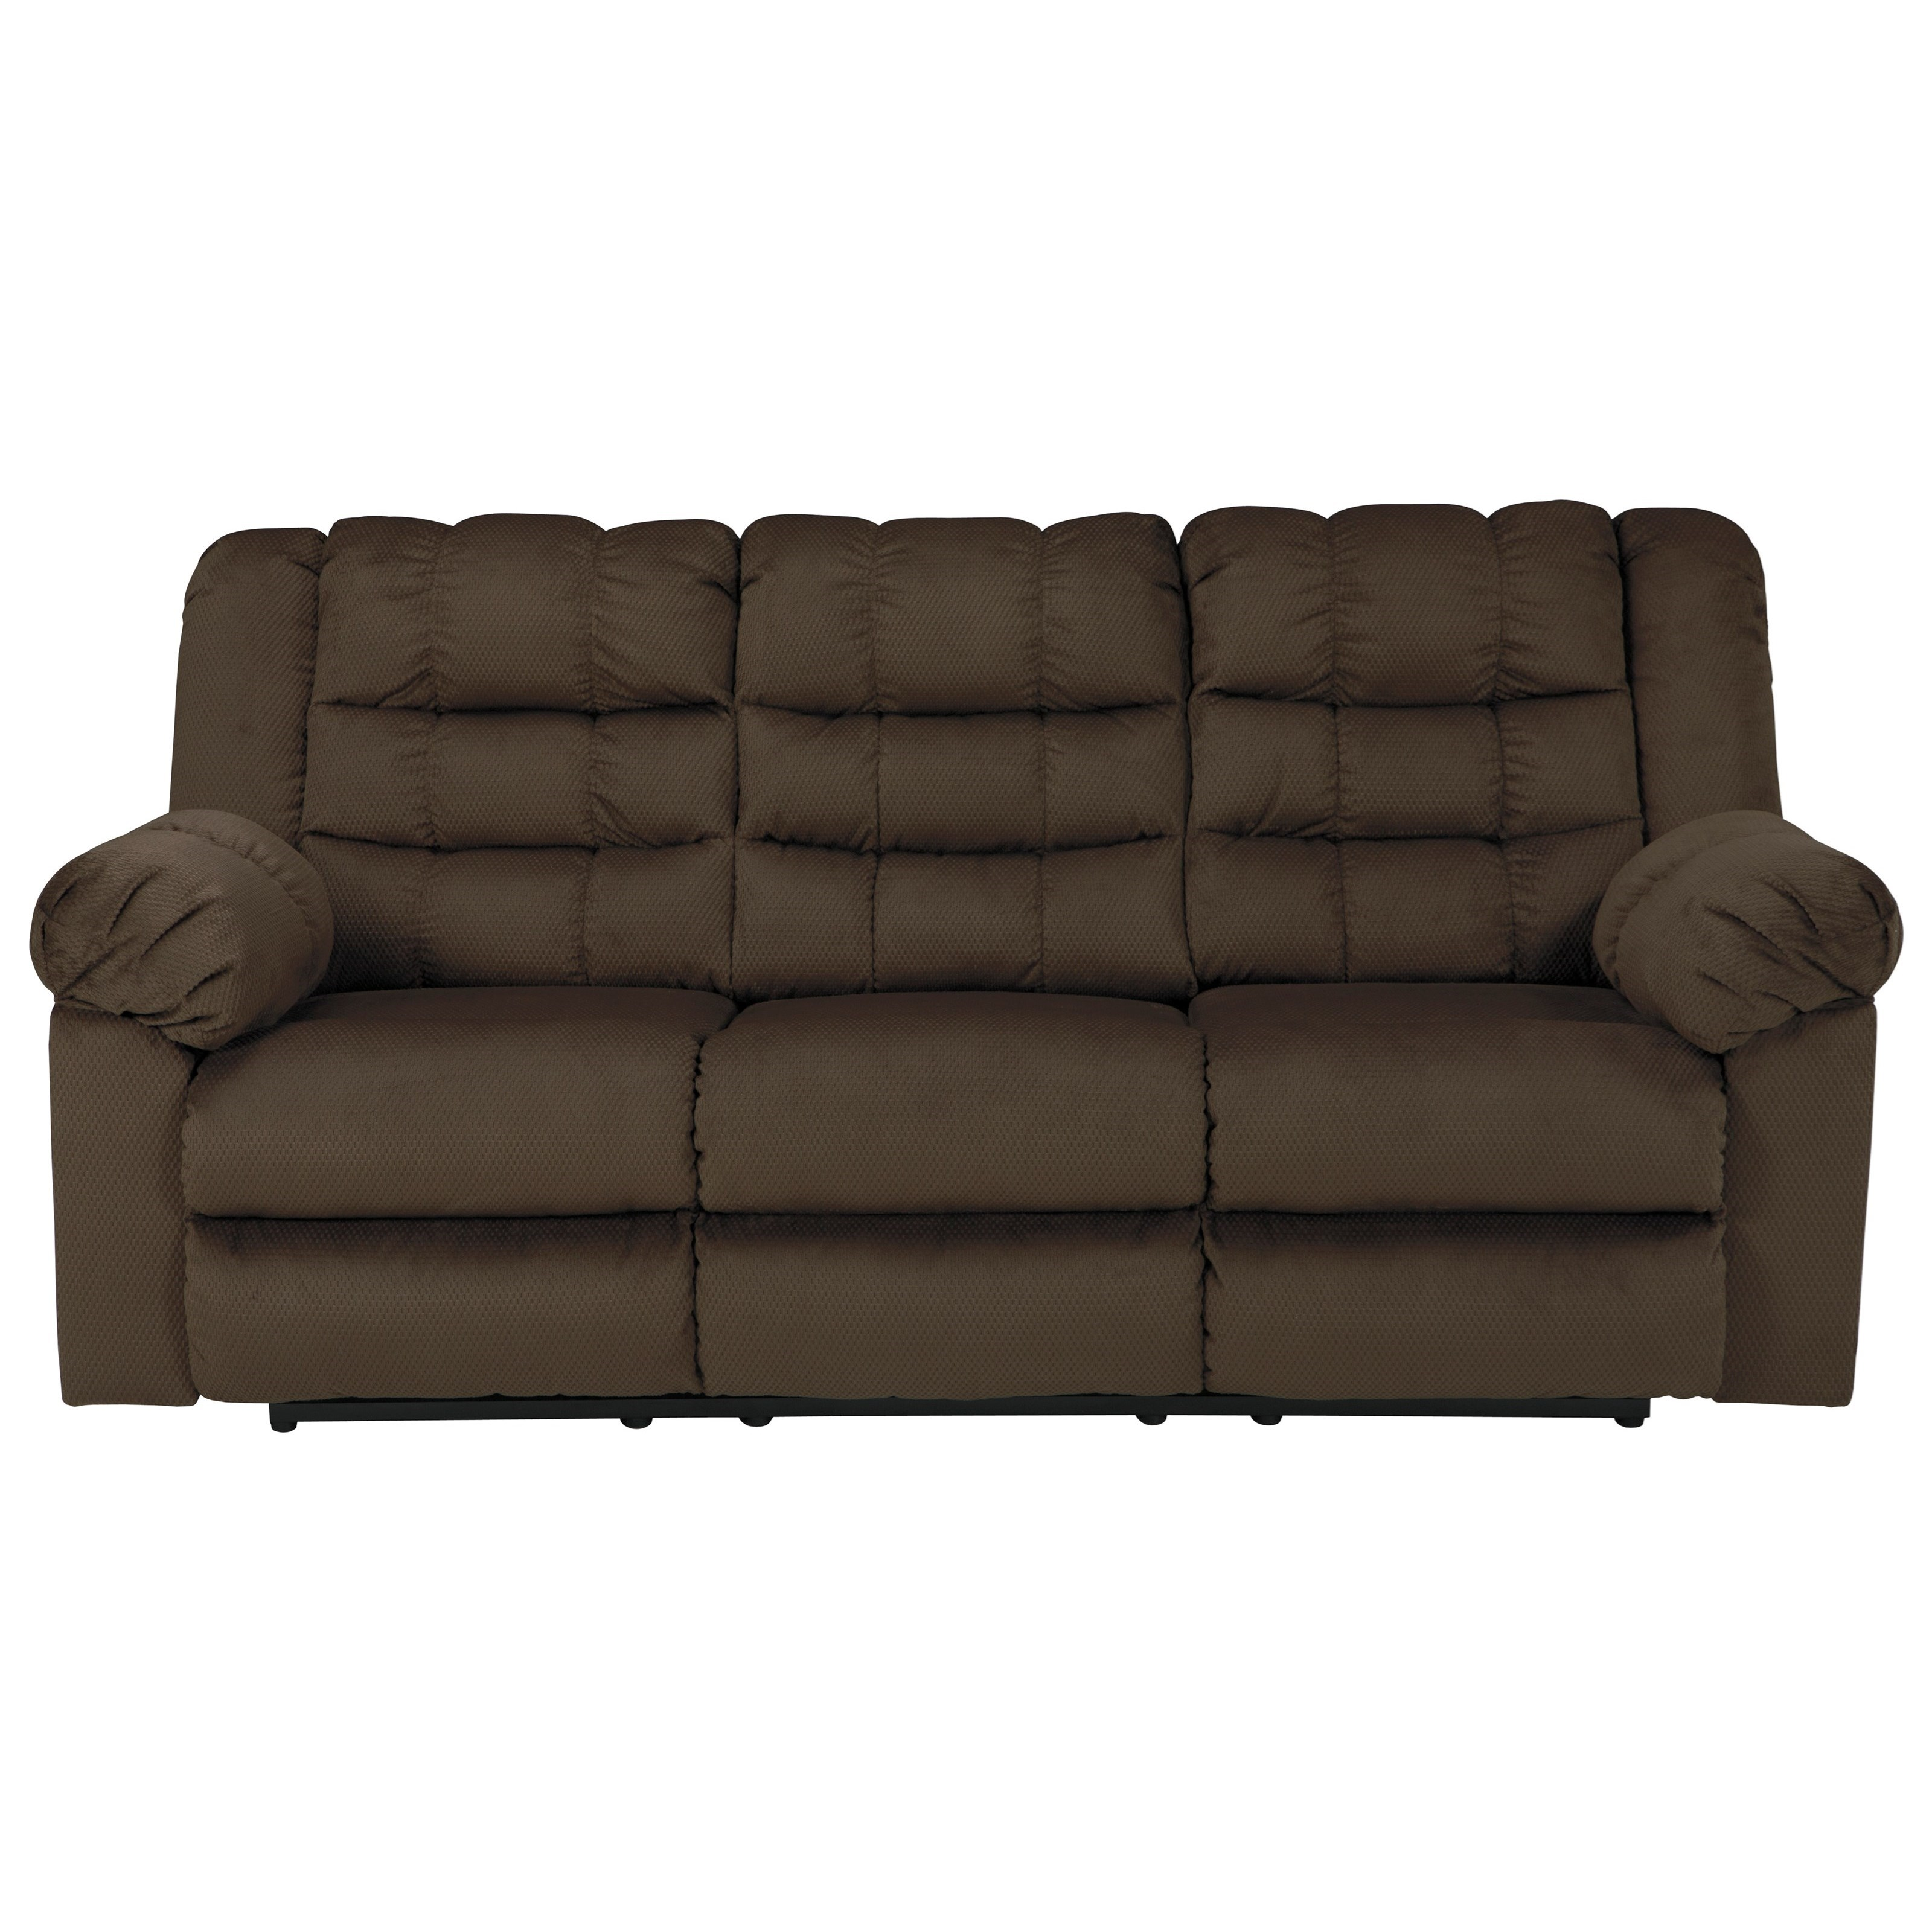 Signature Design by Ashley Mort Reclining Sofa - Item Number: 2610488